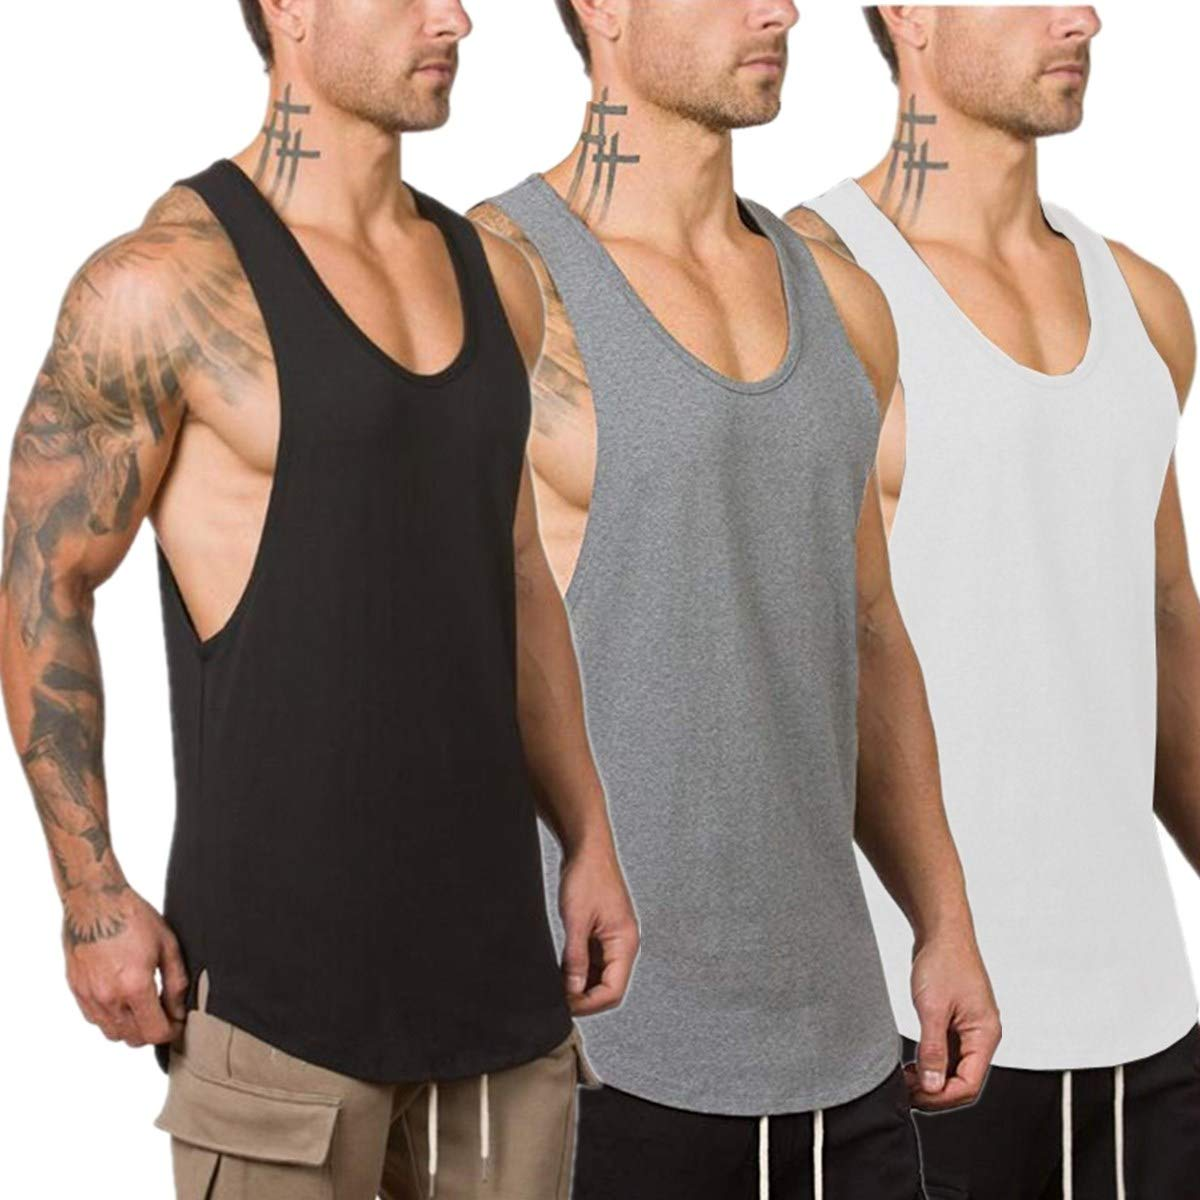 Muscle Killer 3-Pack Men's Muscle Gym Workout Stringer Tank Tops Bodybuilding Fitness T-Shirts (Medium, Black+Gray+White)